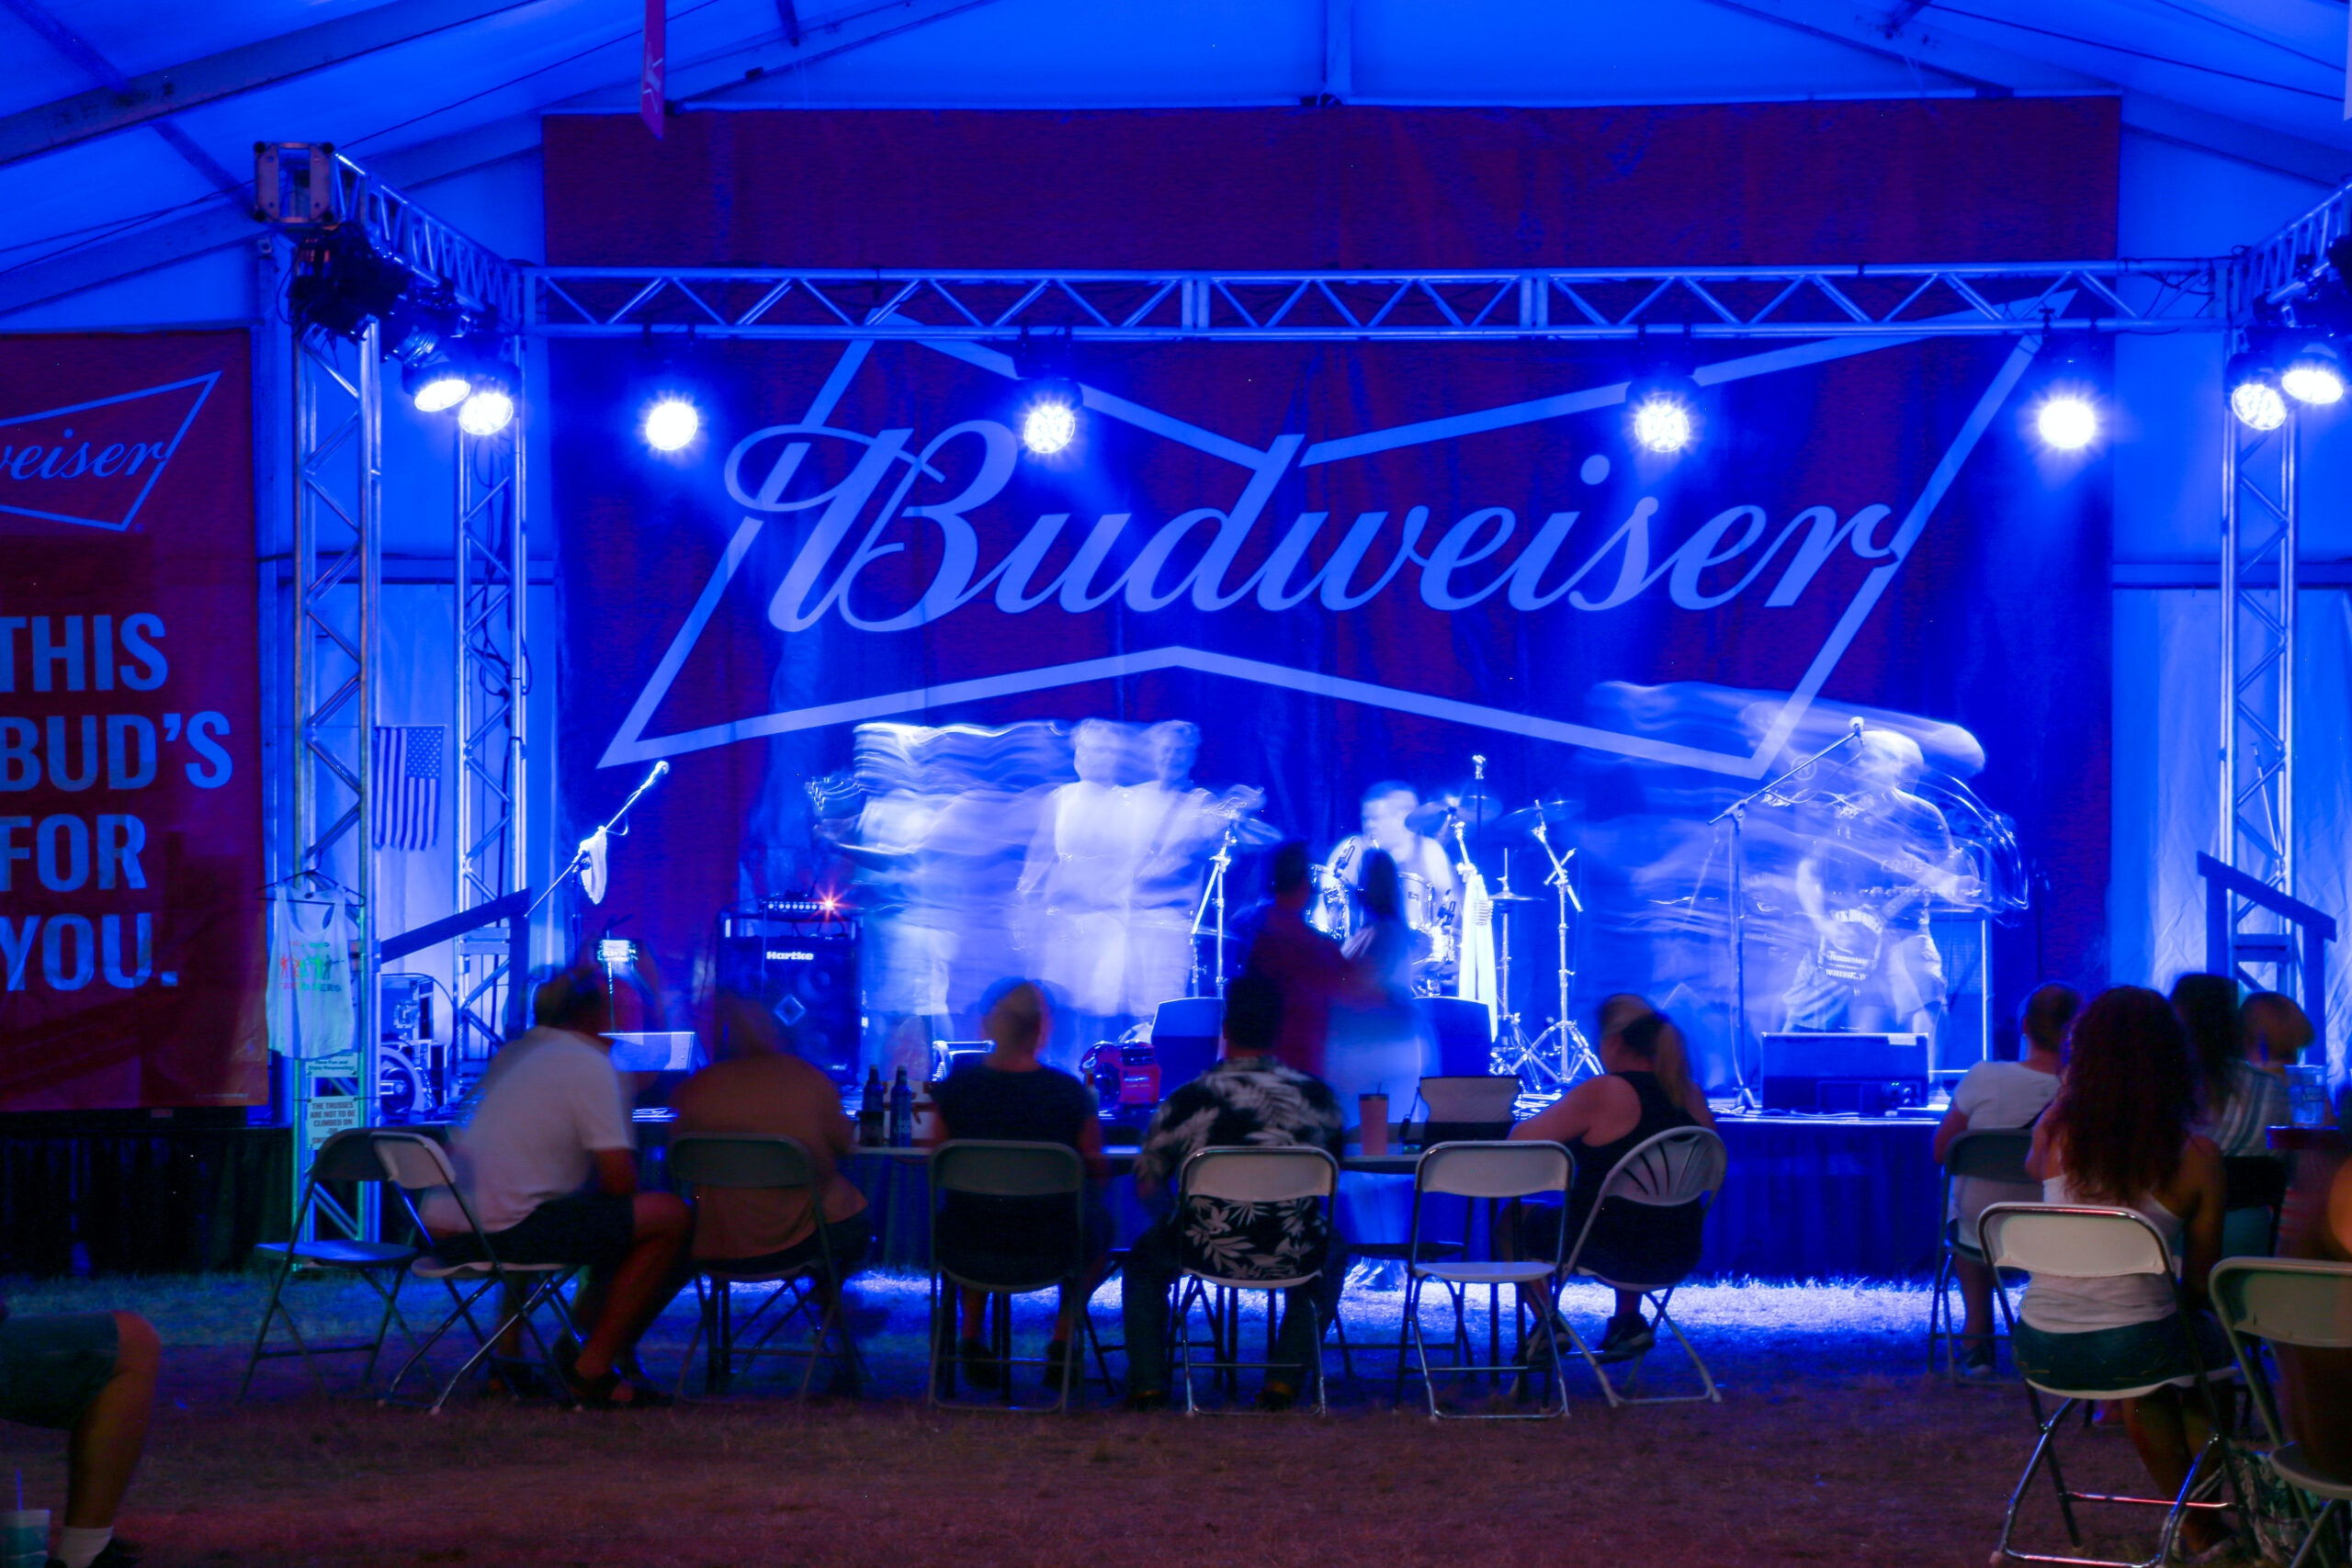 Image of Budweiser Tent